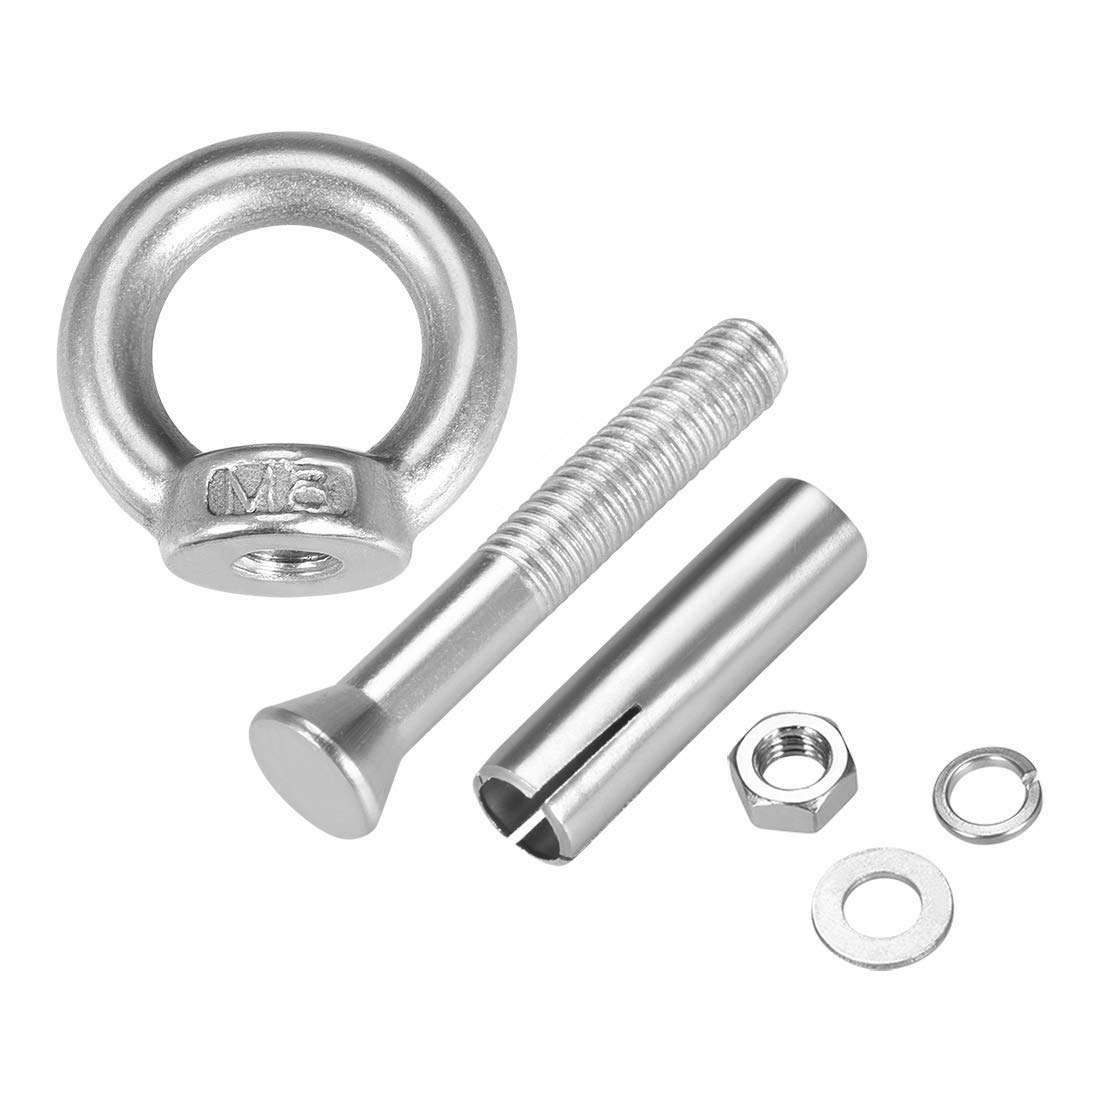 M8 x 60 Screw nut with Expansion Eye Bolt with Ring 304 Stainless Steel Anchor Rough Bolts 1 Piece